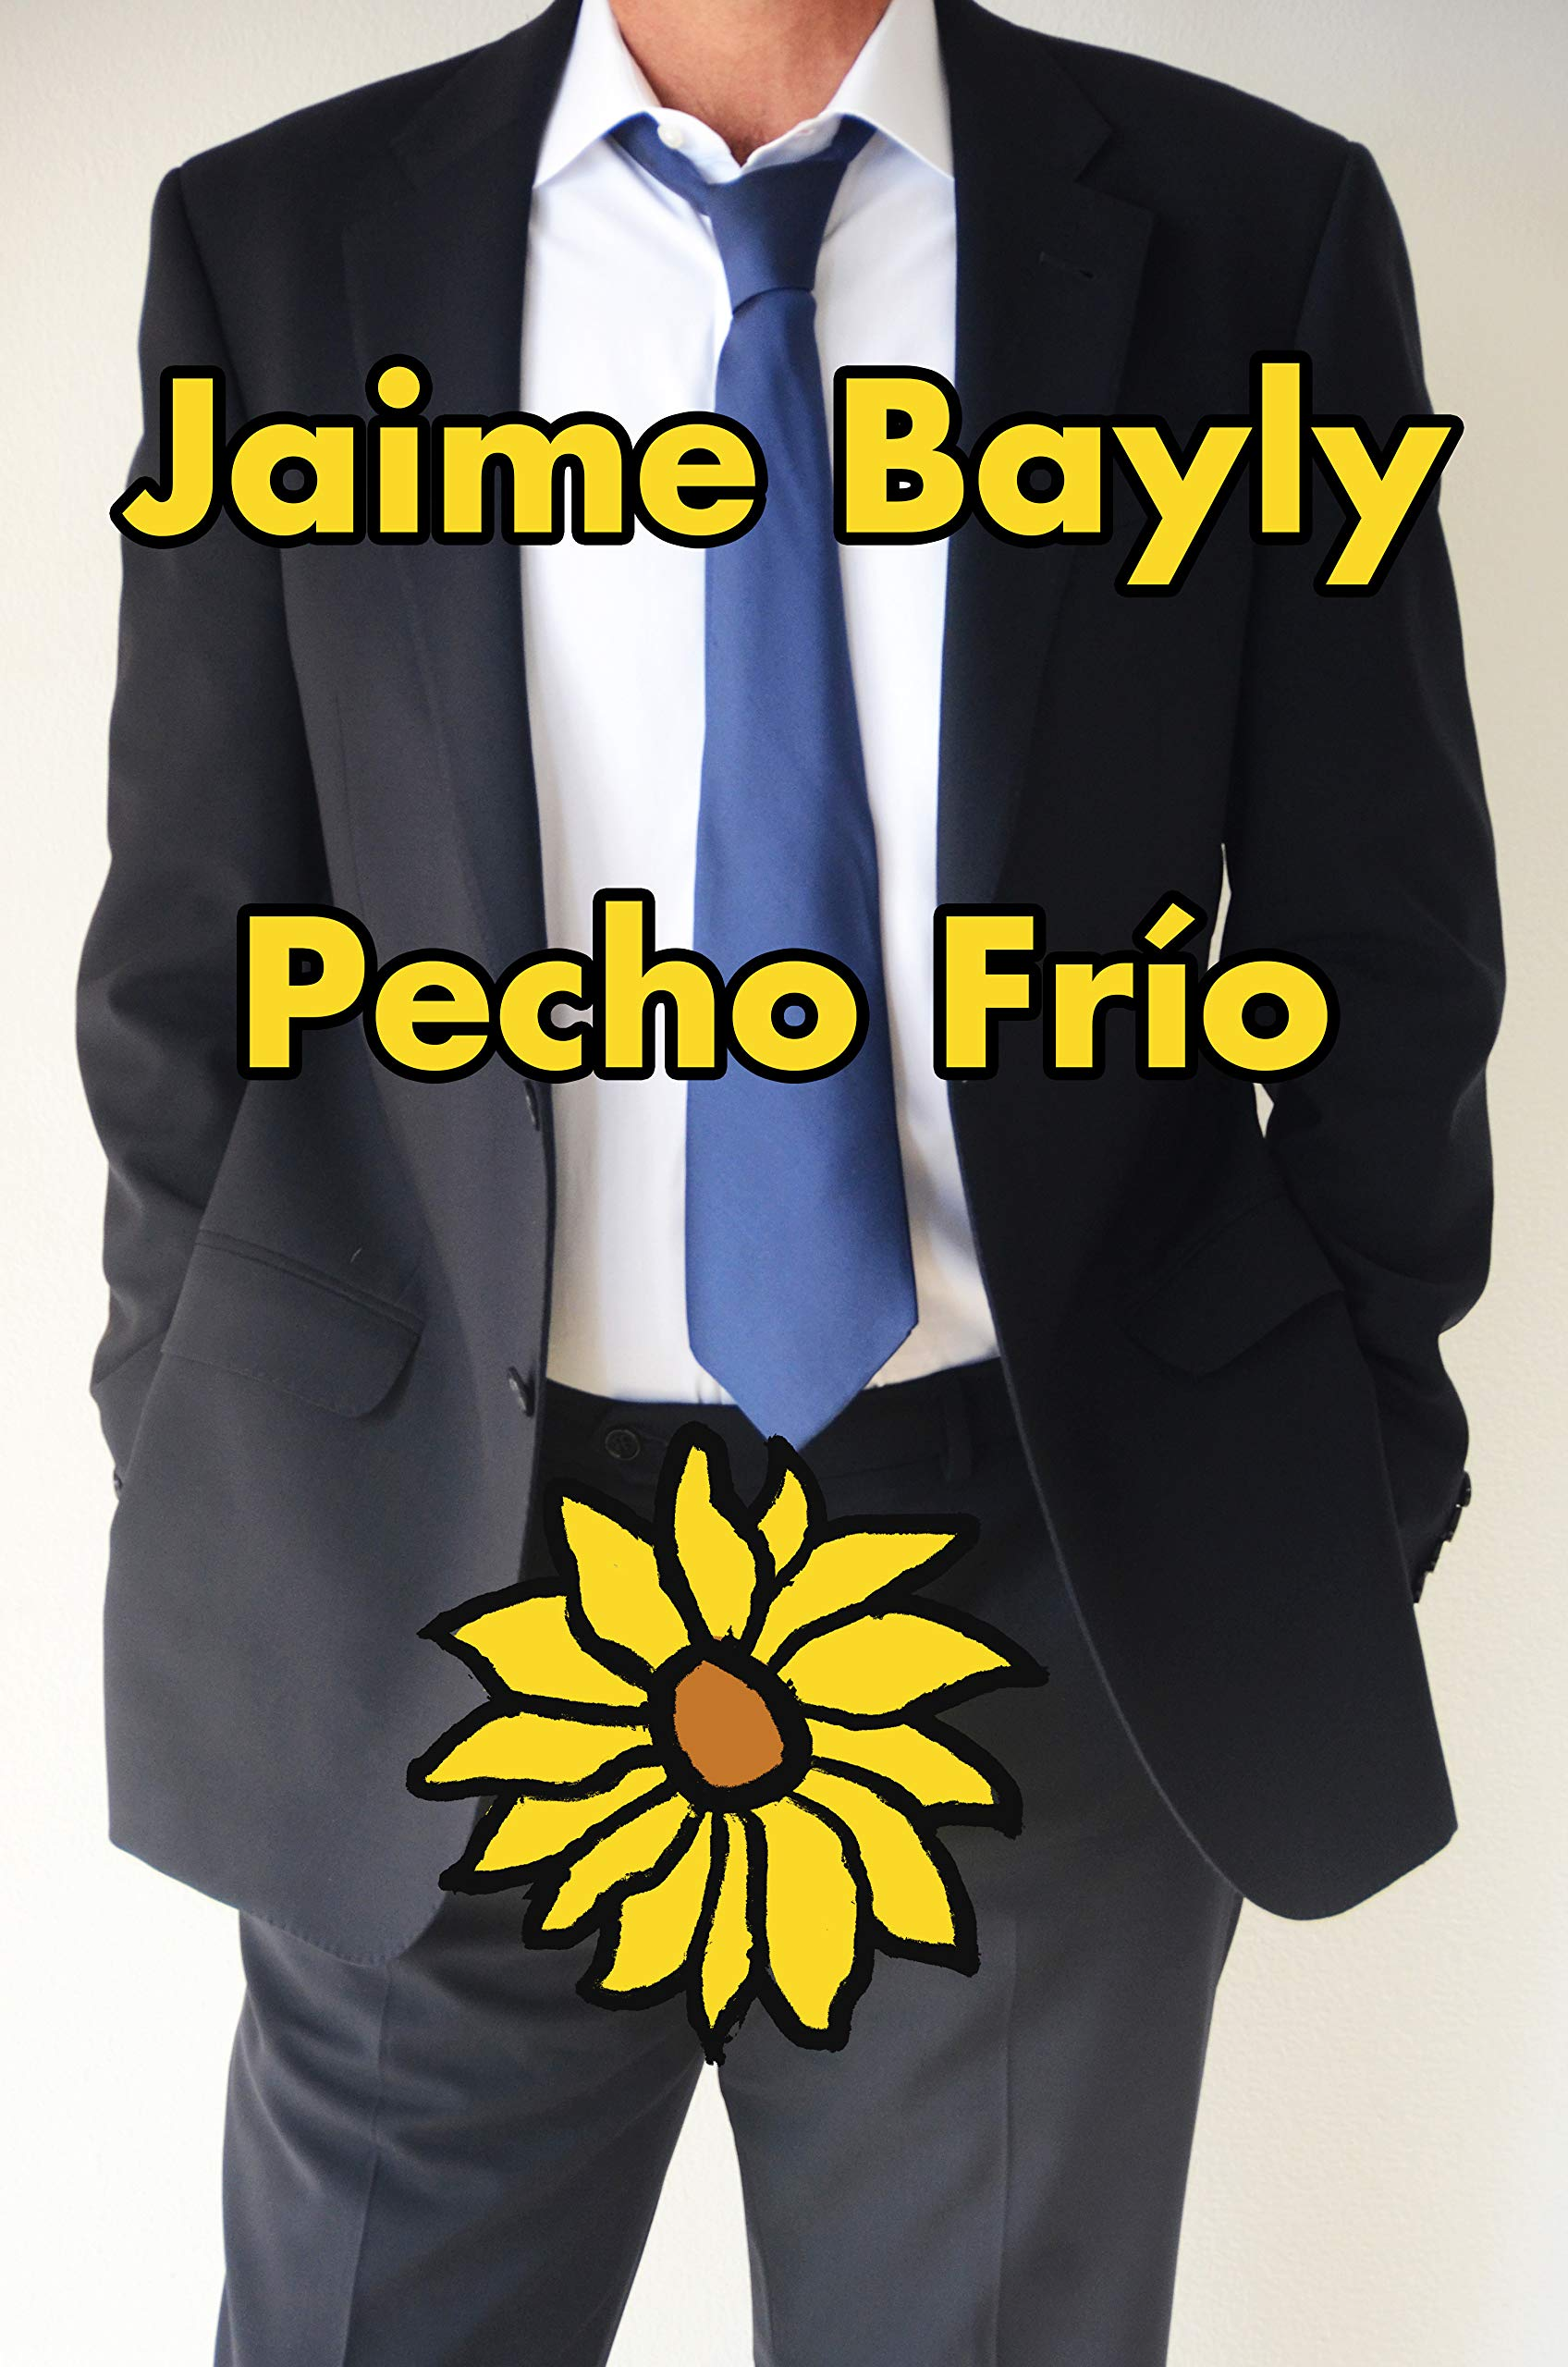 Amazon Com Pecho Frio Spanish Edition 9780525564966 Bayly Jaime Books By online studio productions and uncredited. amazon com pecho frio spanish edition